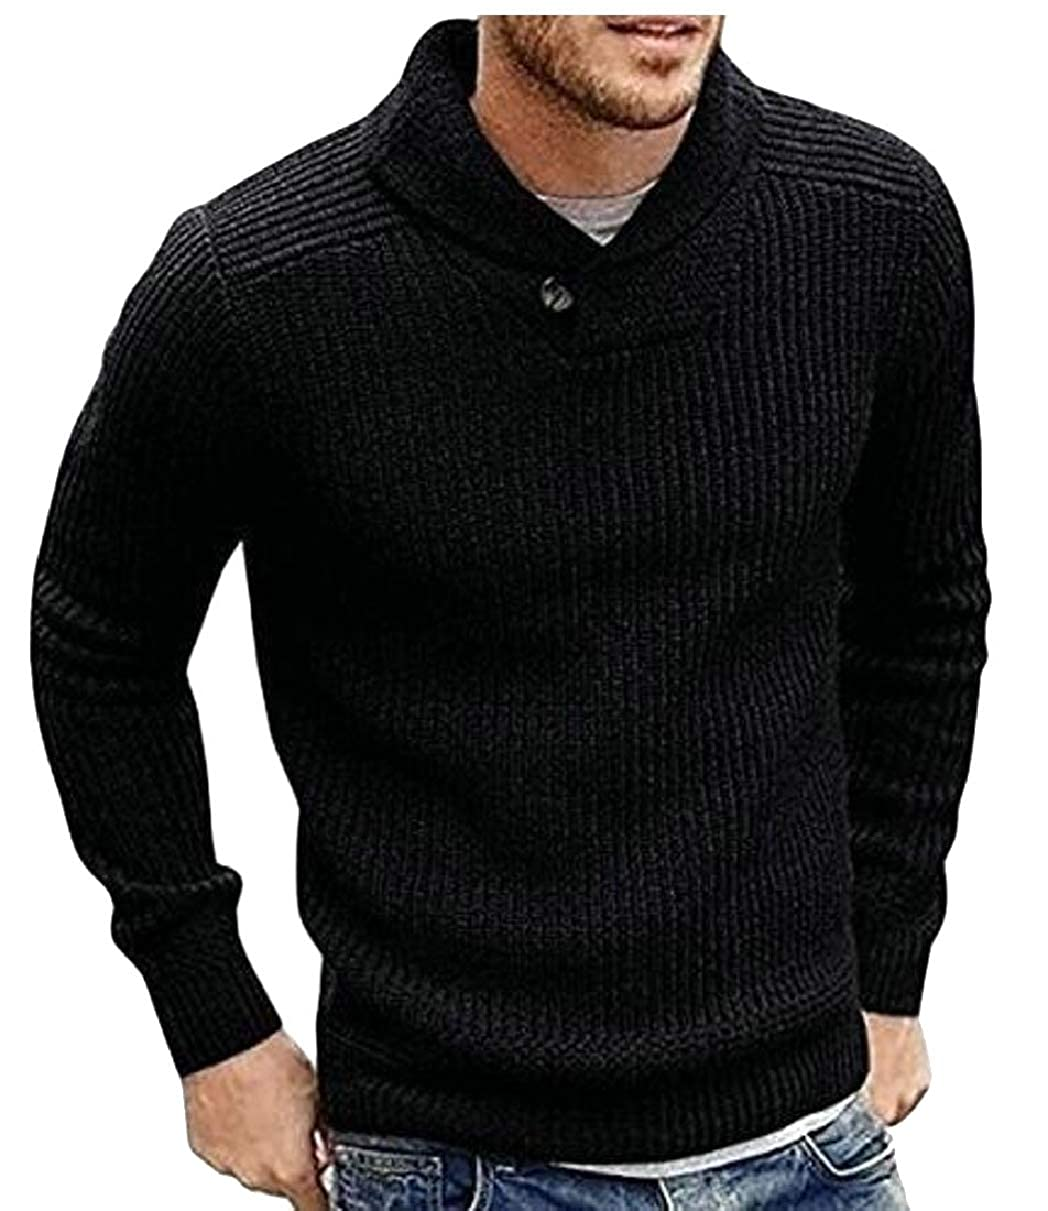 ZXFHZS Mens Long Sleeve Lightweight Pullover Cowl Neck Ribbed Sweater